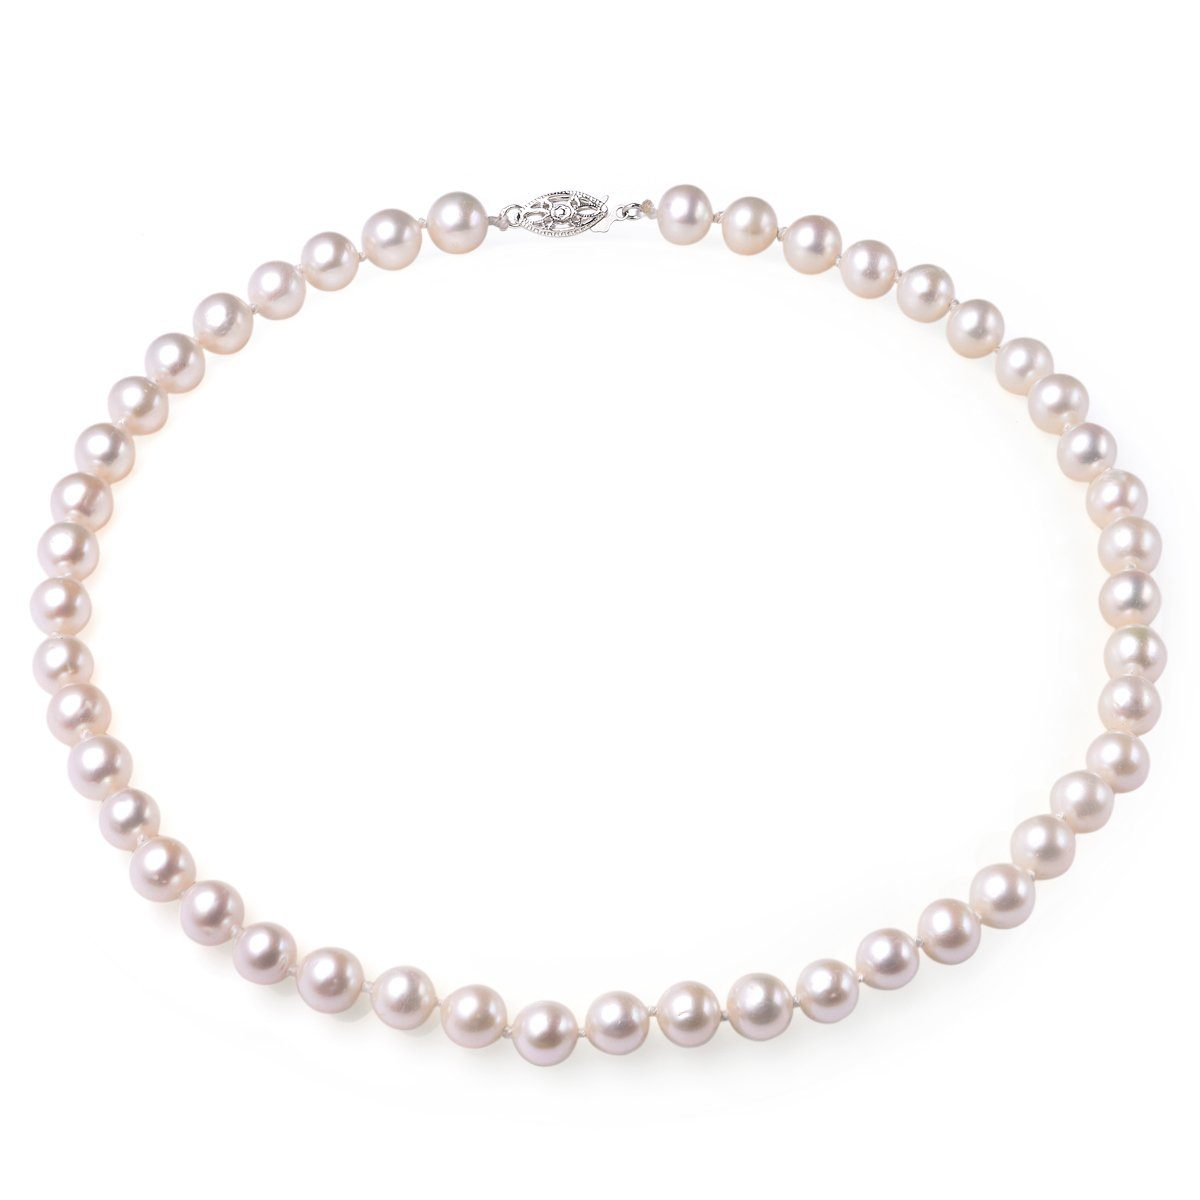 white 9-10mm aa+ quality cultured freshwater pearl necklace with 14k solid white gold fish hook